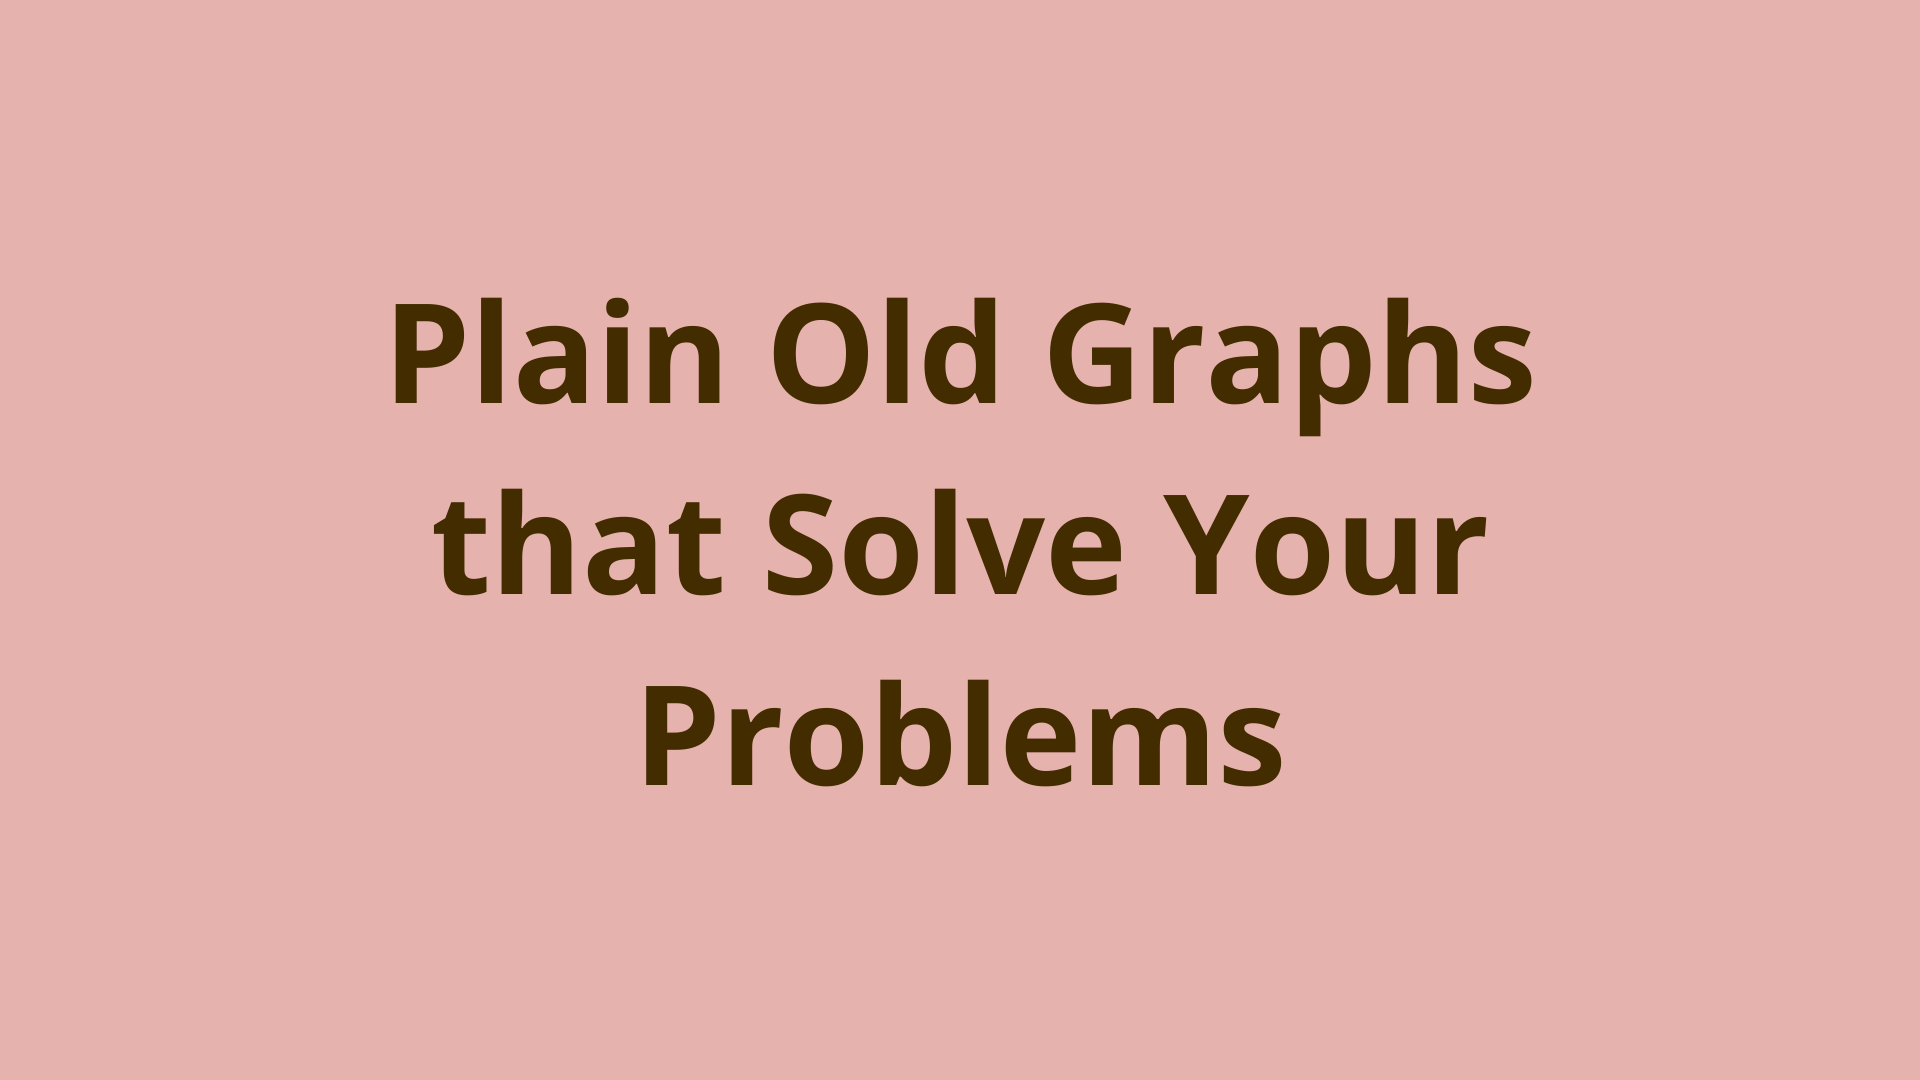 Image of Plain old graphs that solve your problems